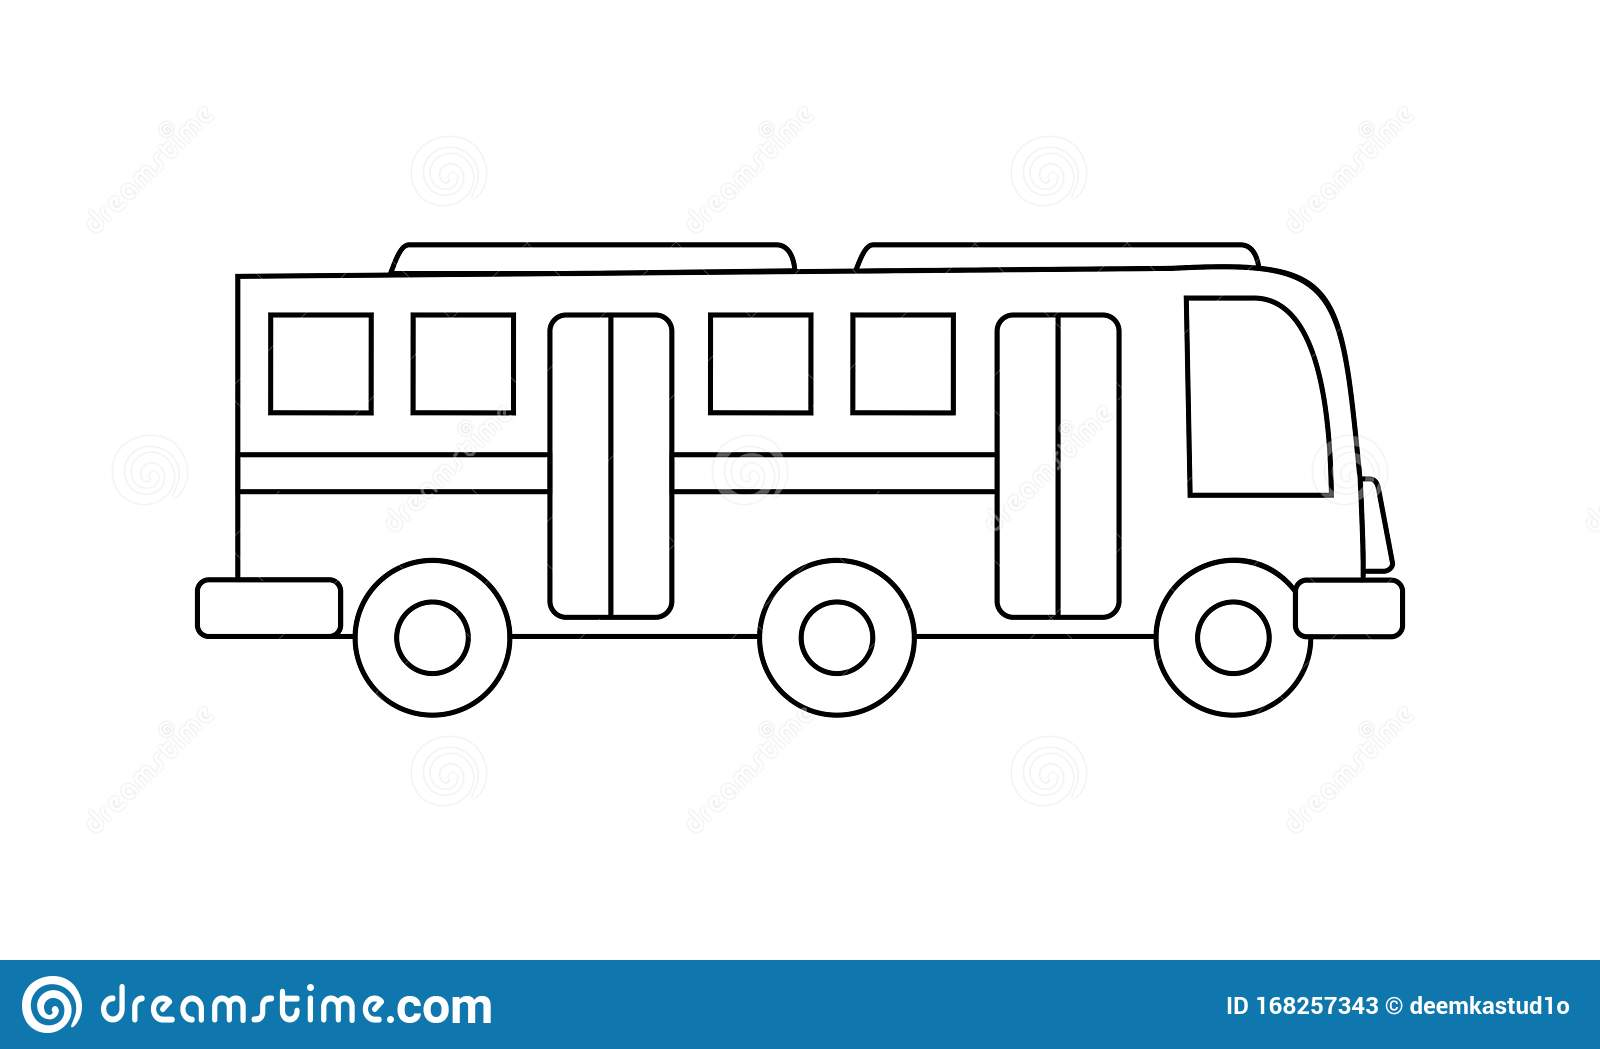 Bus Coloring Book Transportation To Educate Kids Learn Colors Pages Stock Vector Illustration Of File Educate 168257343